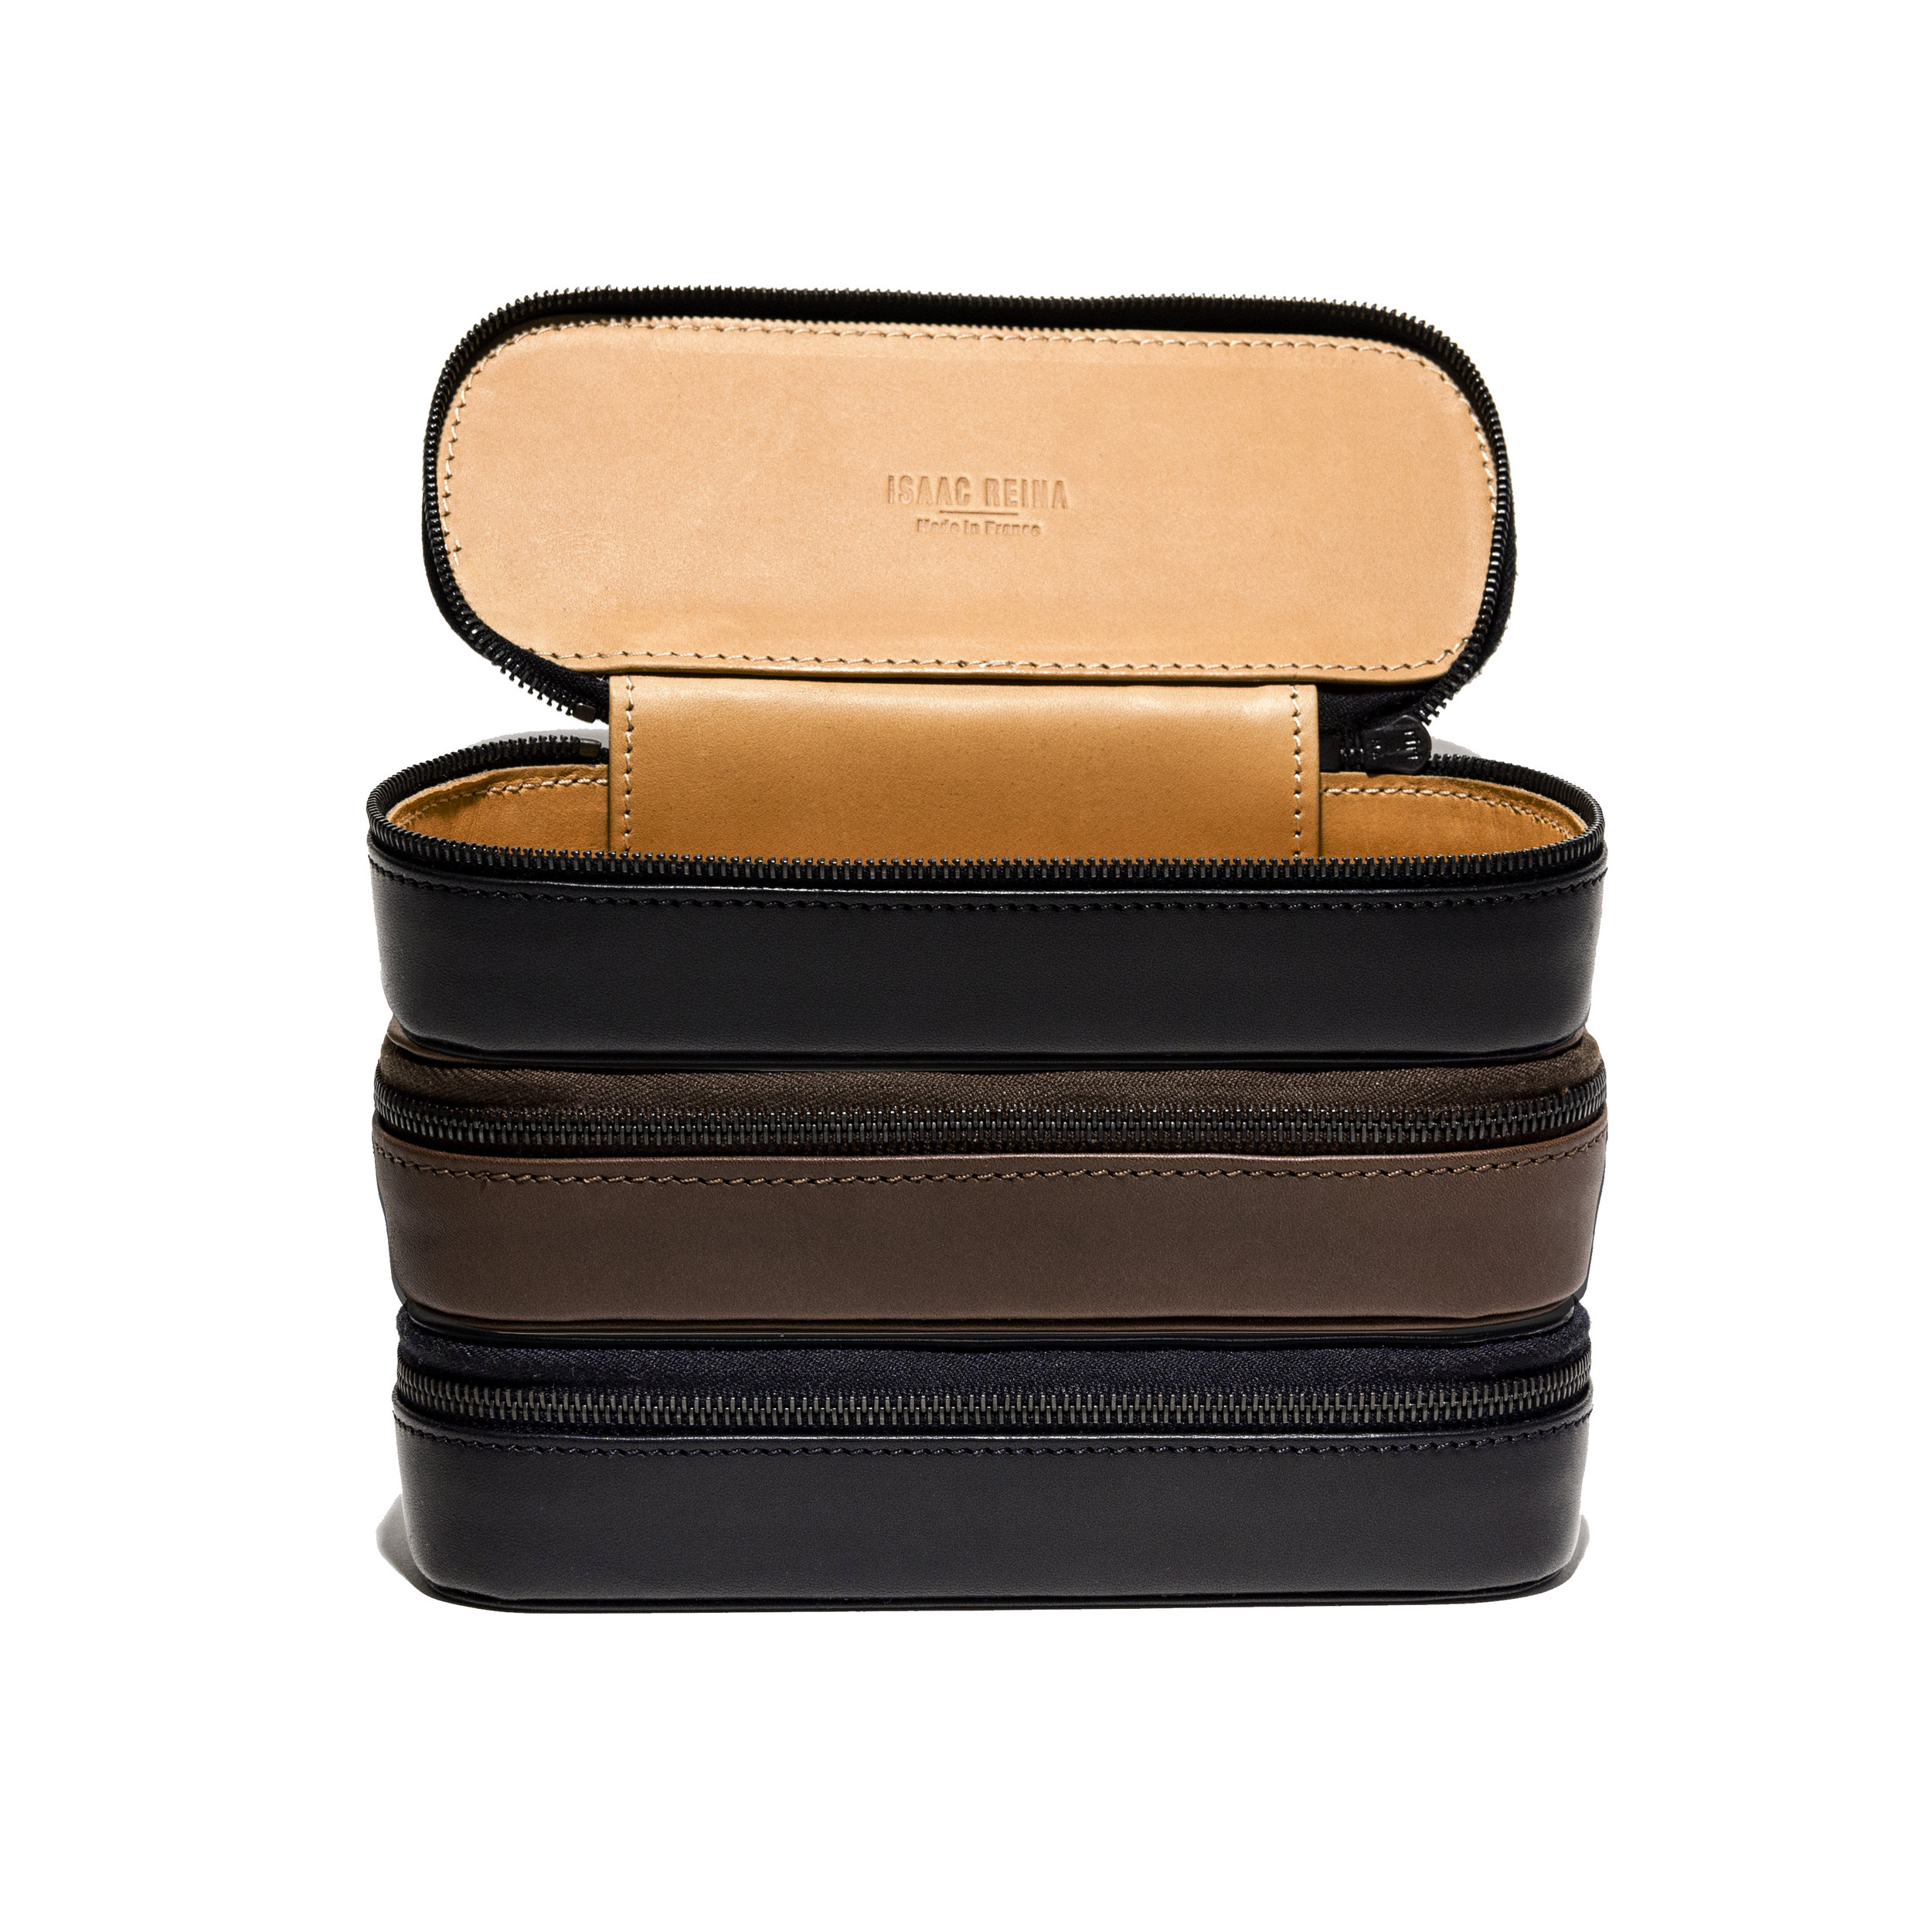 ISAAC REINA leather eyeglass case